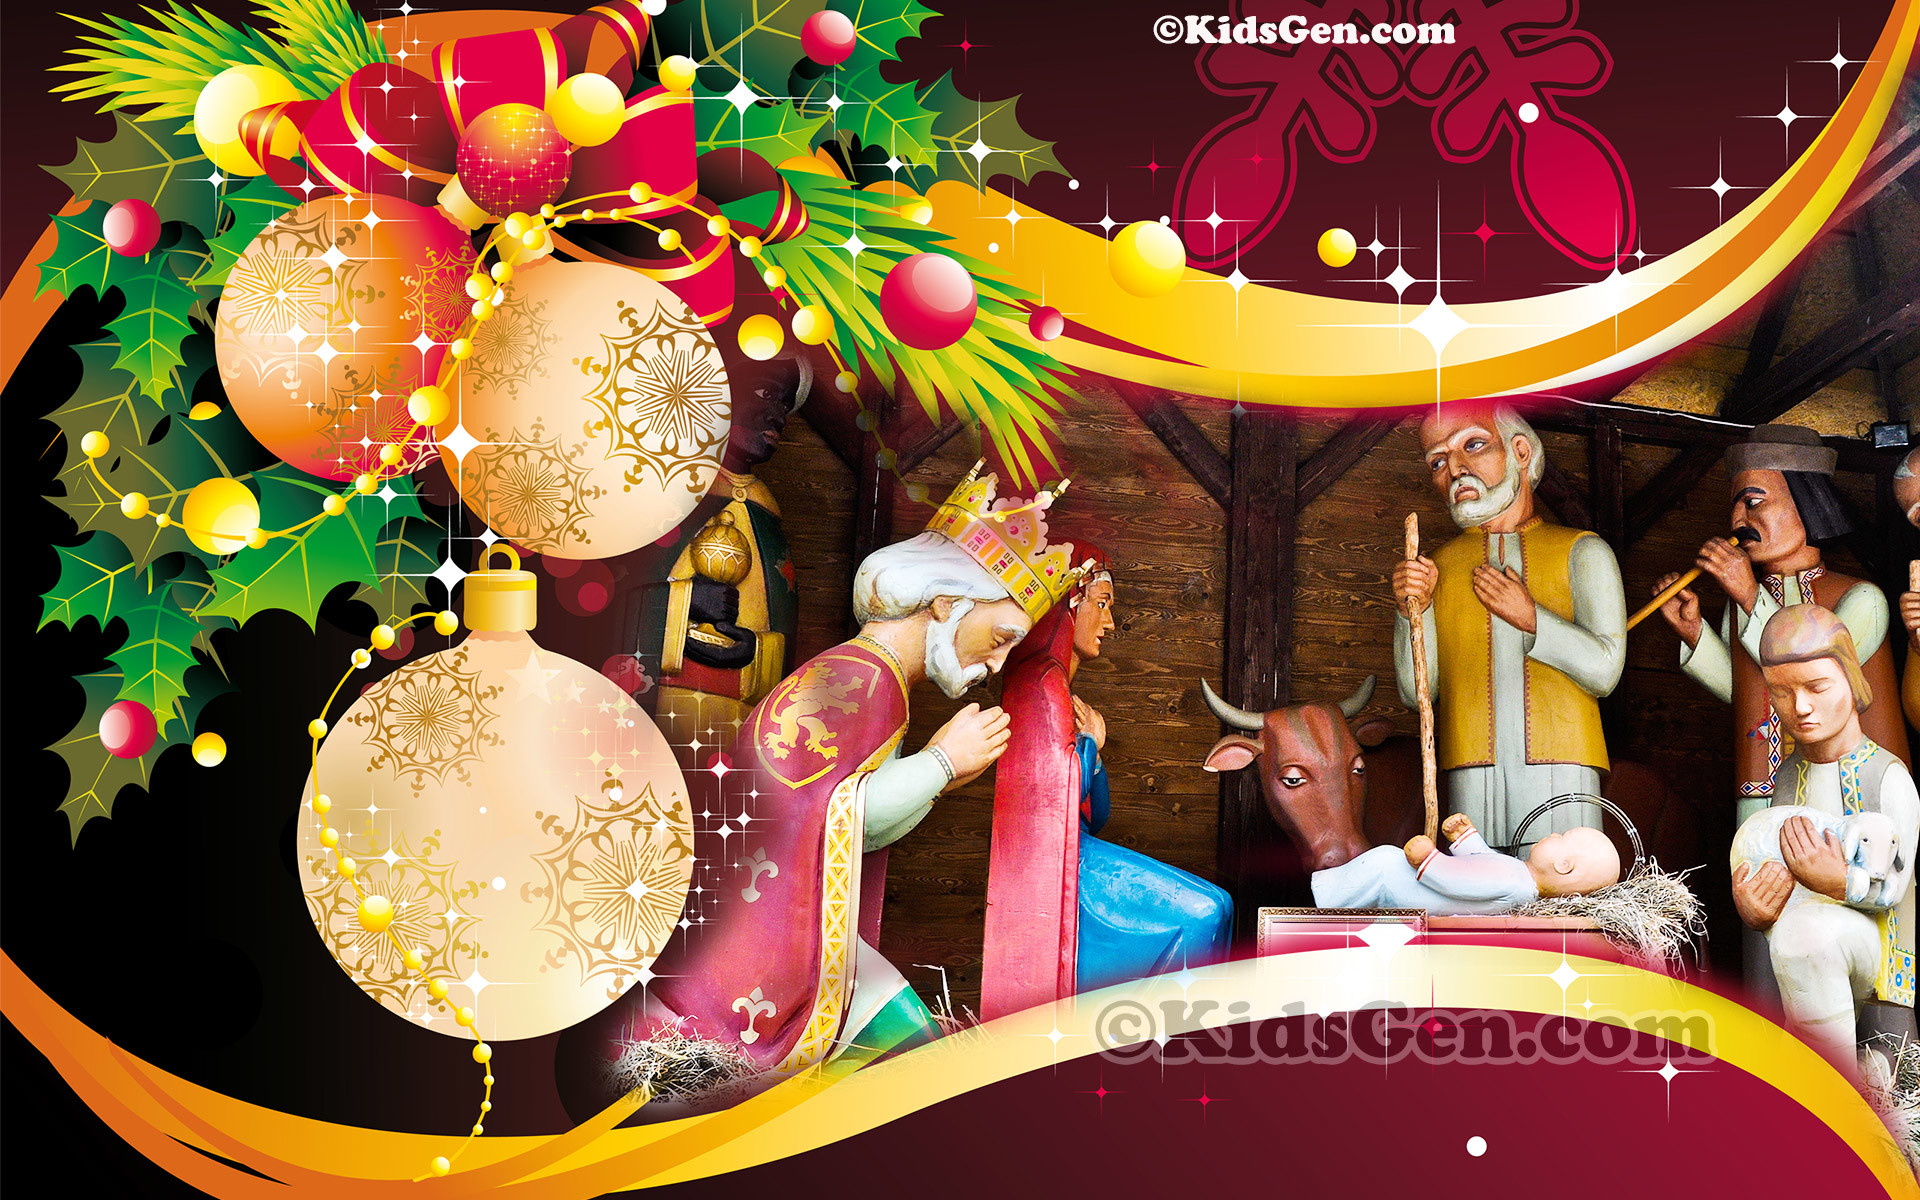 1920x1200 A wonderful high definition wallpaper of Christmas decoration featuring  birth of Jesus Christ.